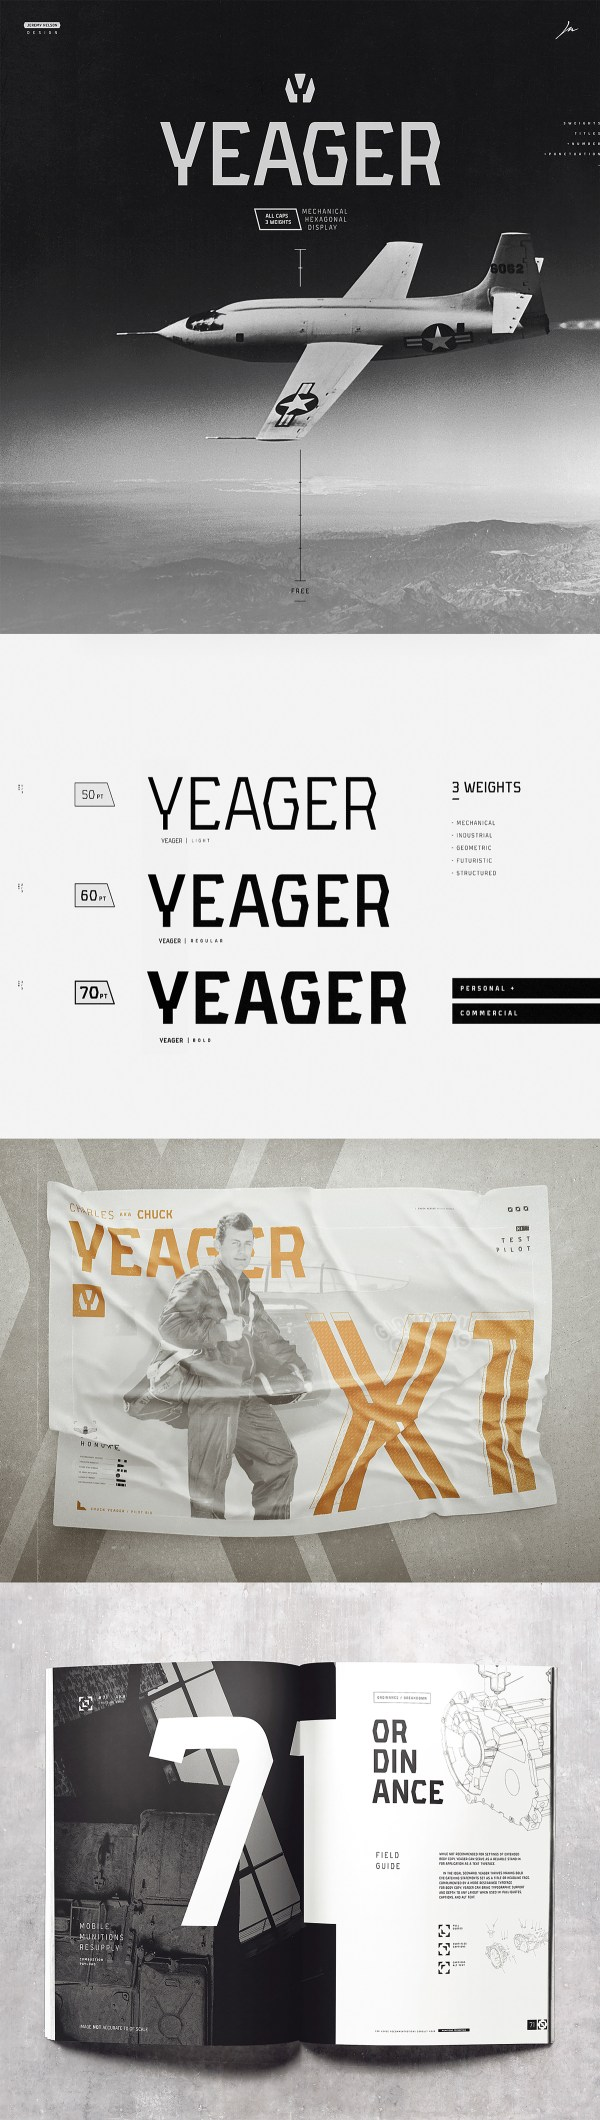 Yeager - Free Display Typeface